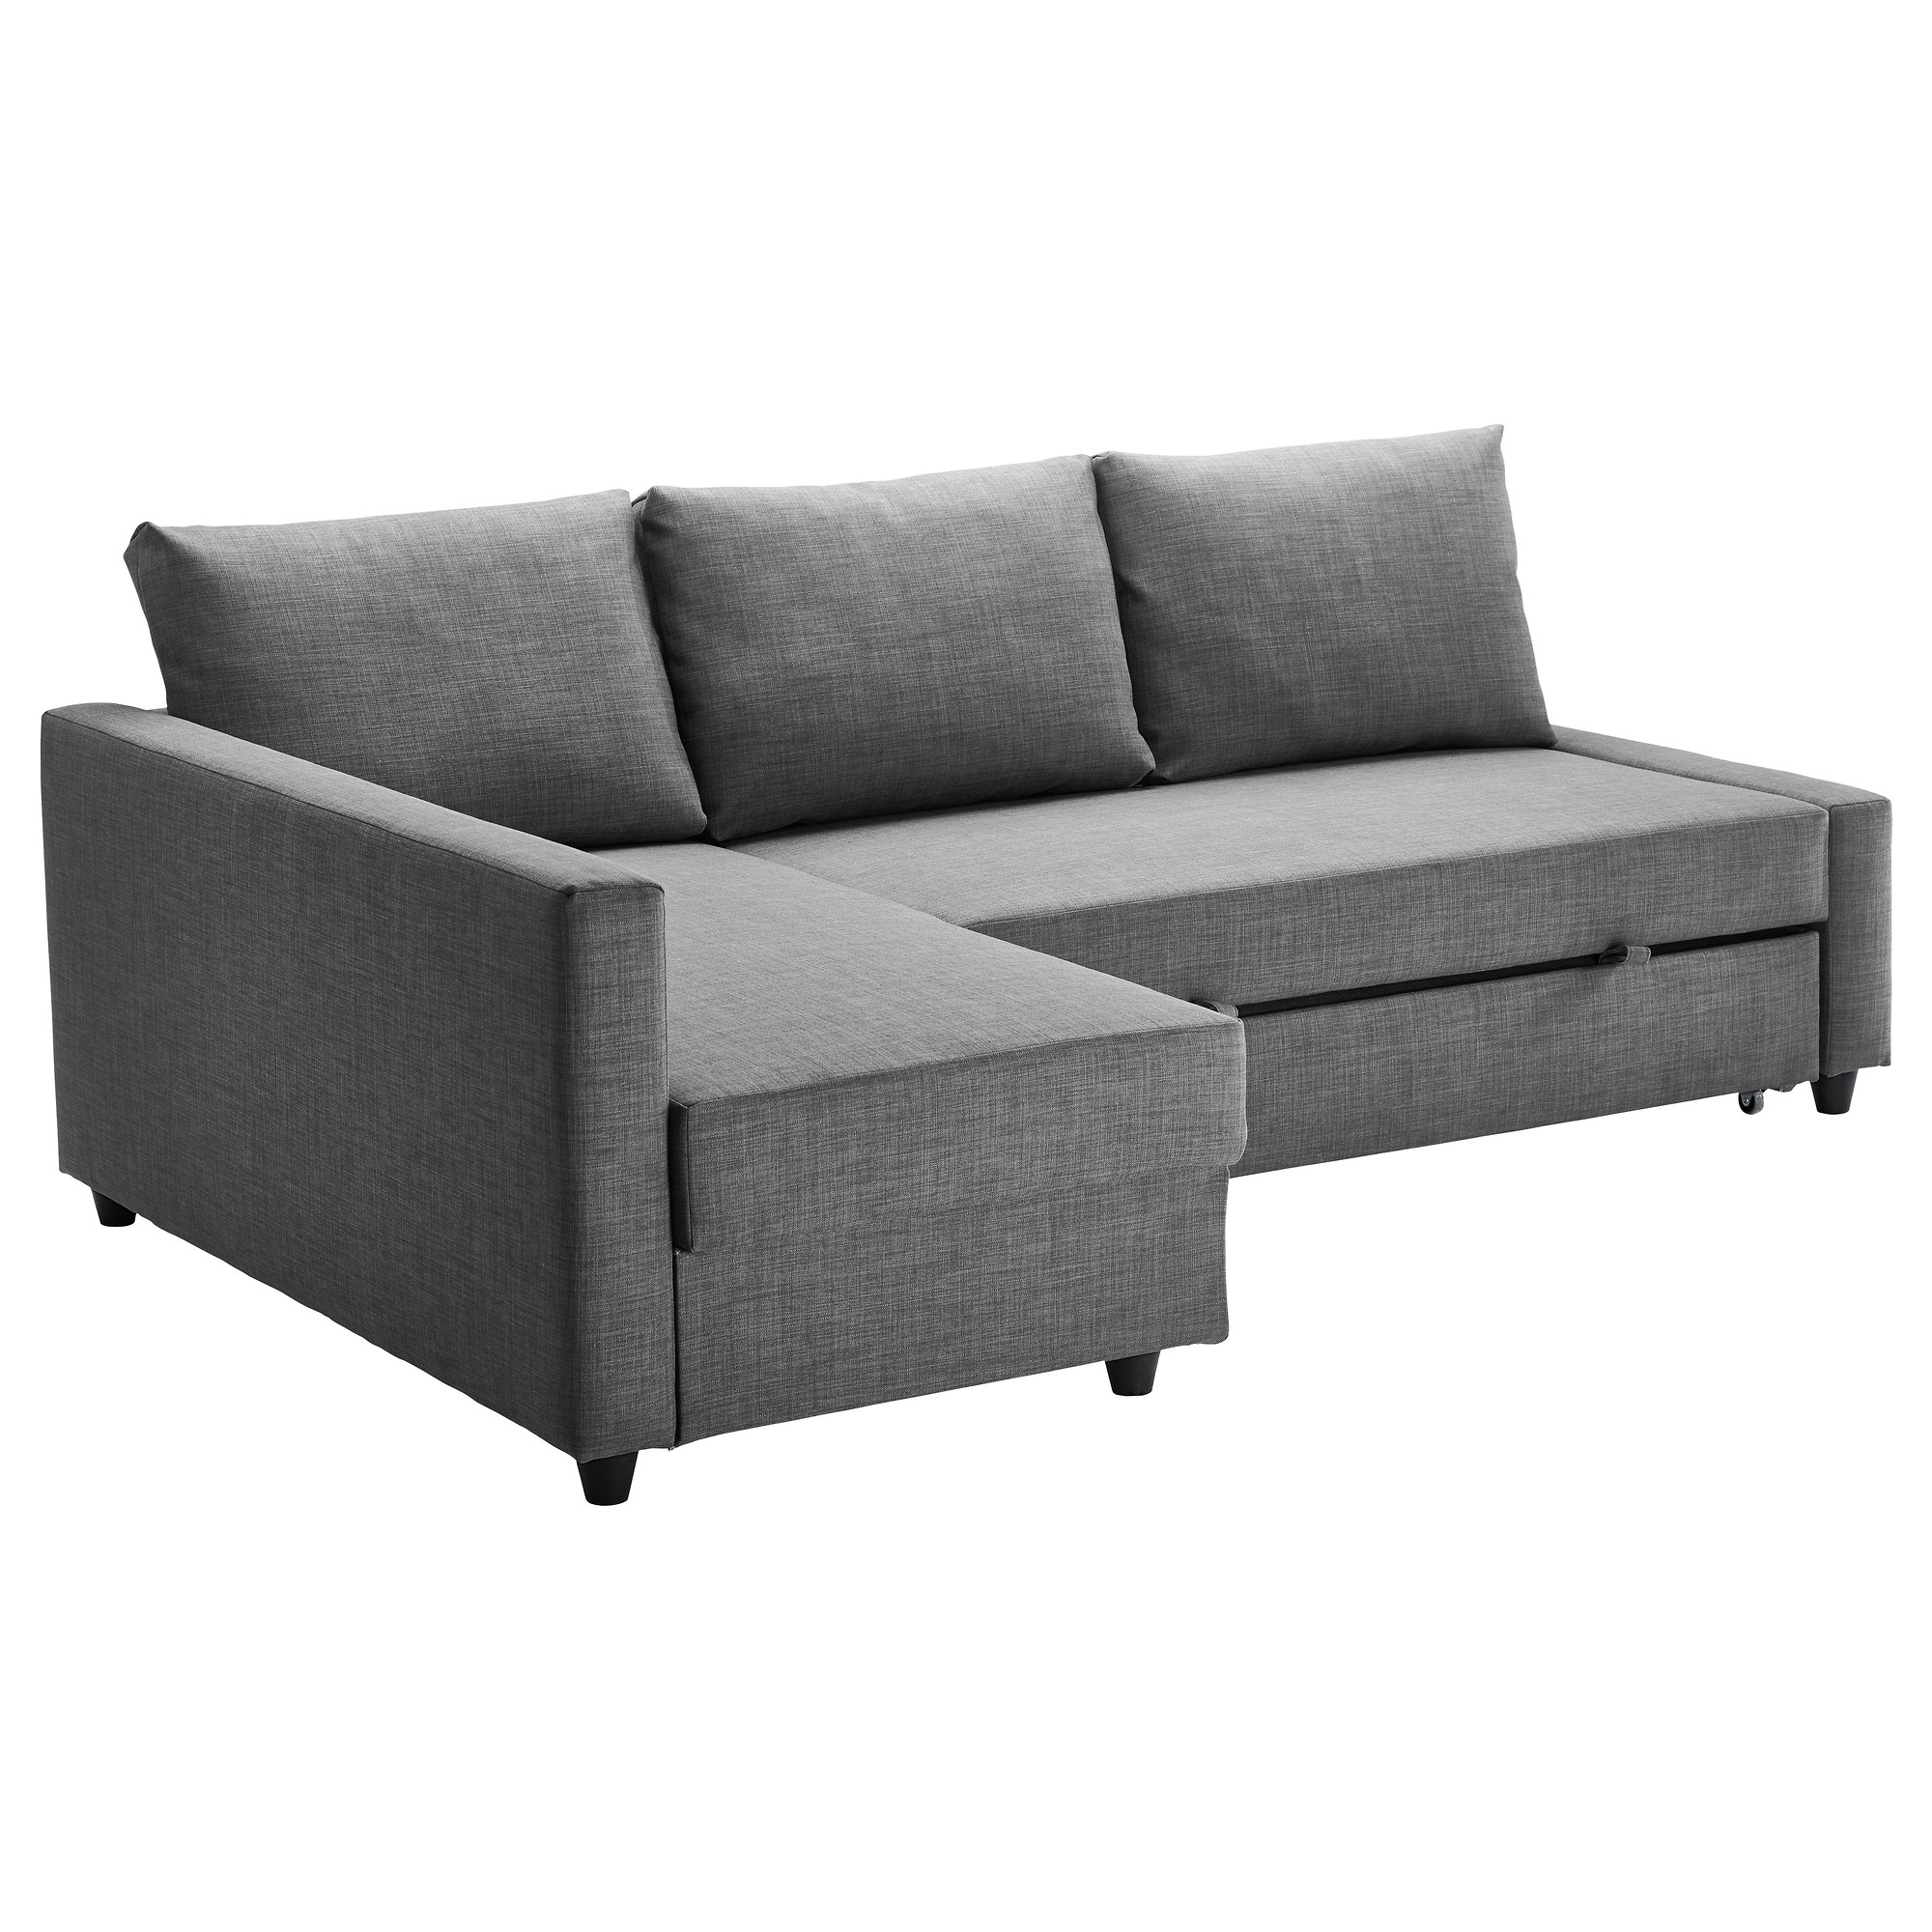 Ikea Corner Sofas With Storage With Regard To Widely Used Friheten Corner Sofa Bed With Storage – Skiftebo Dark Gray – Ikea (View 6 of 20)